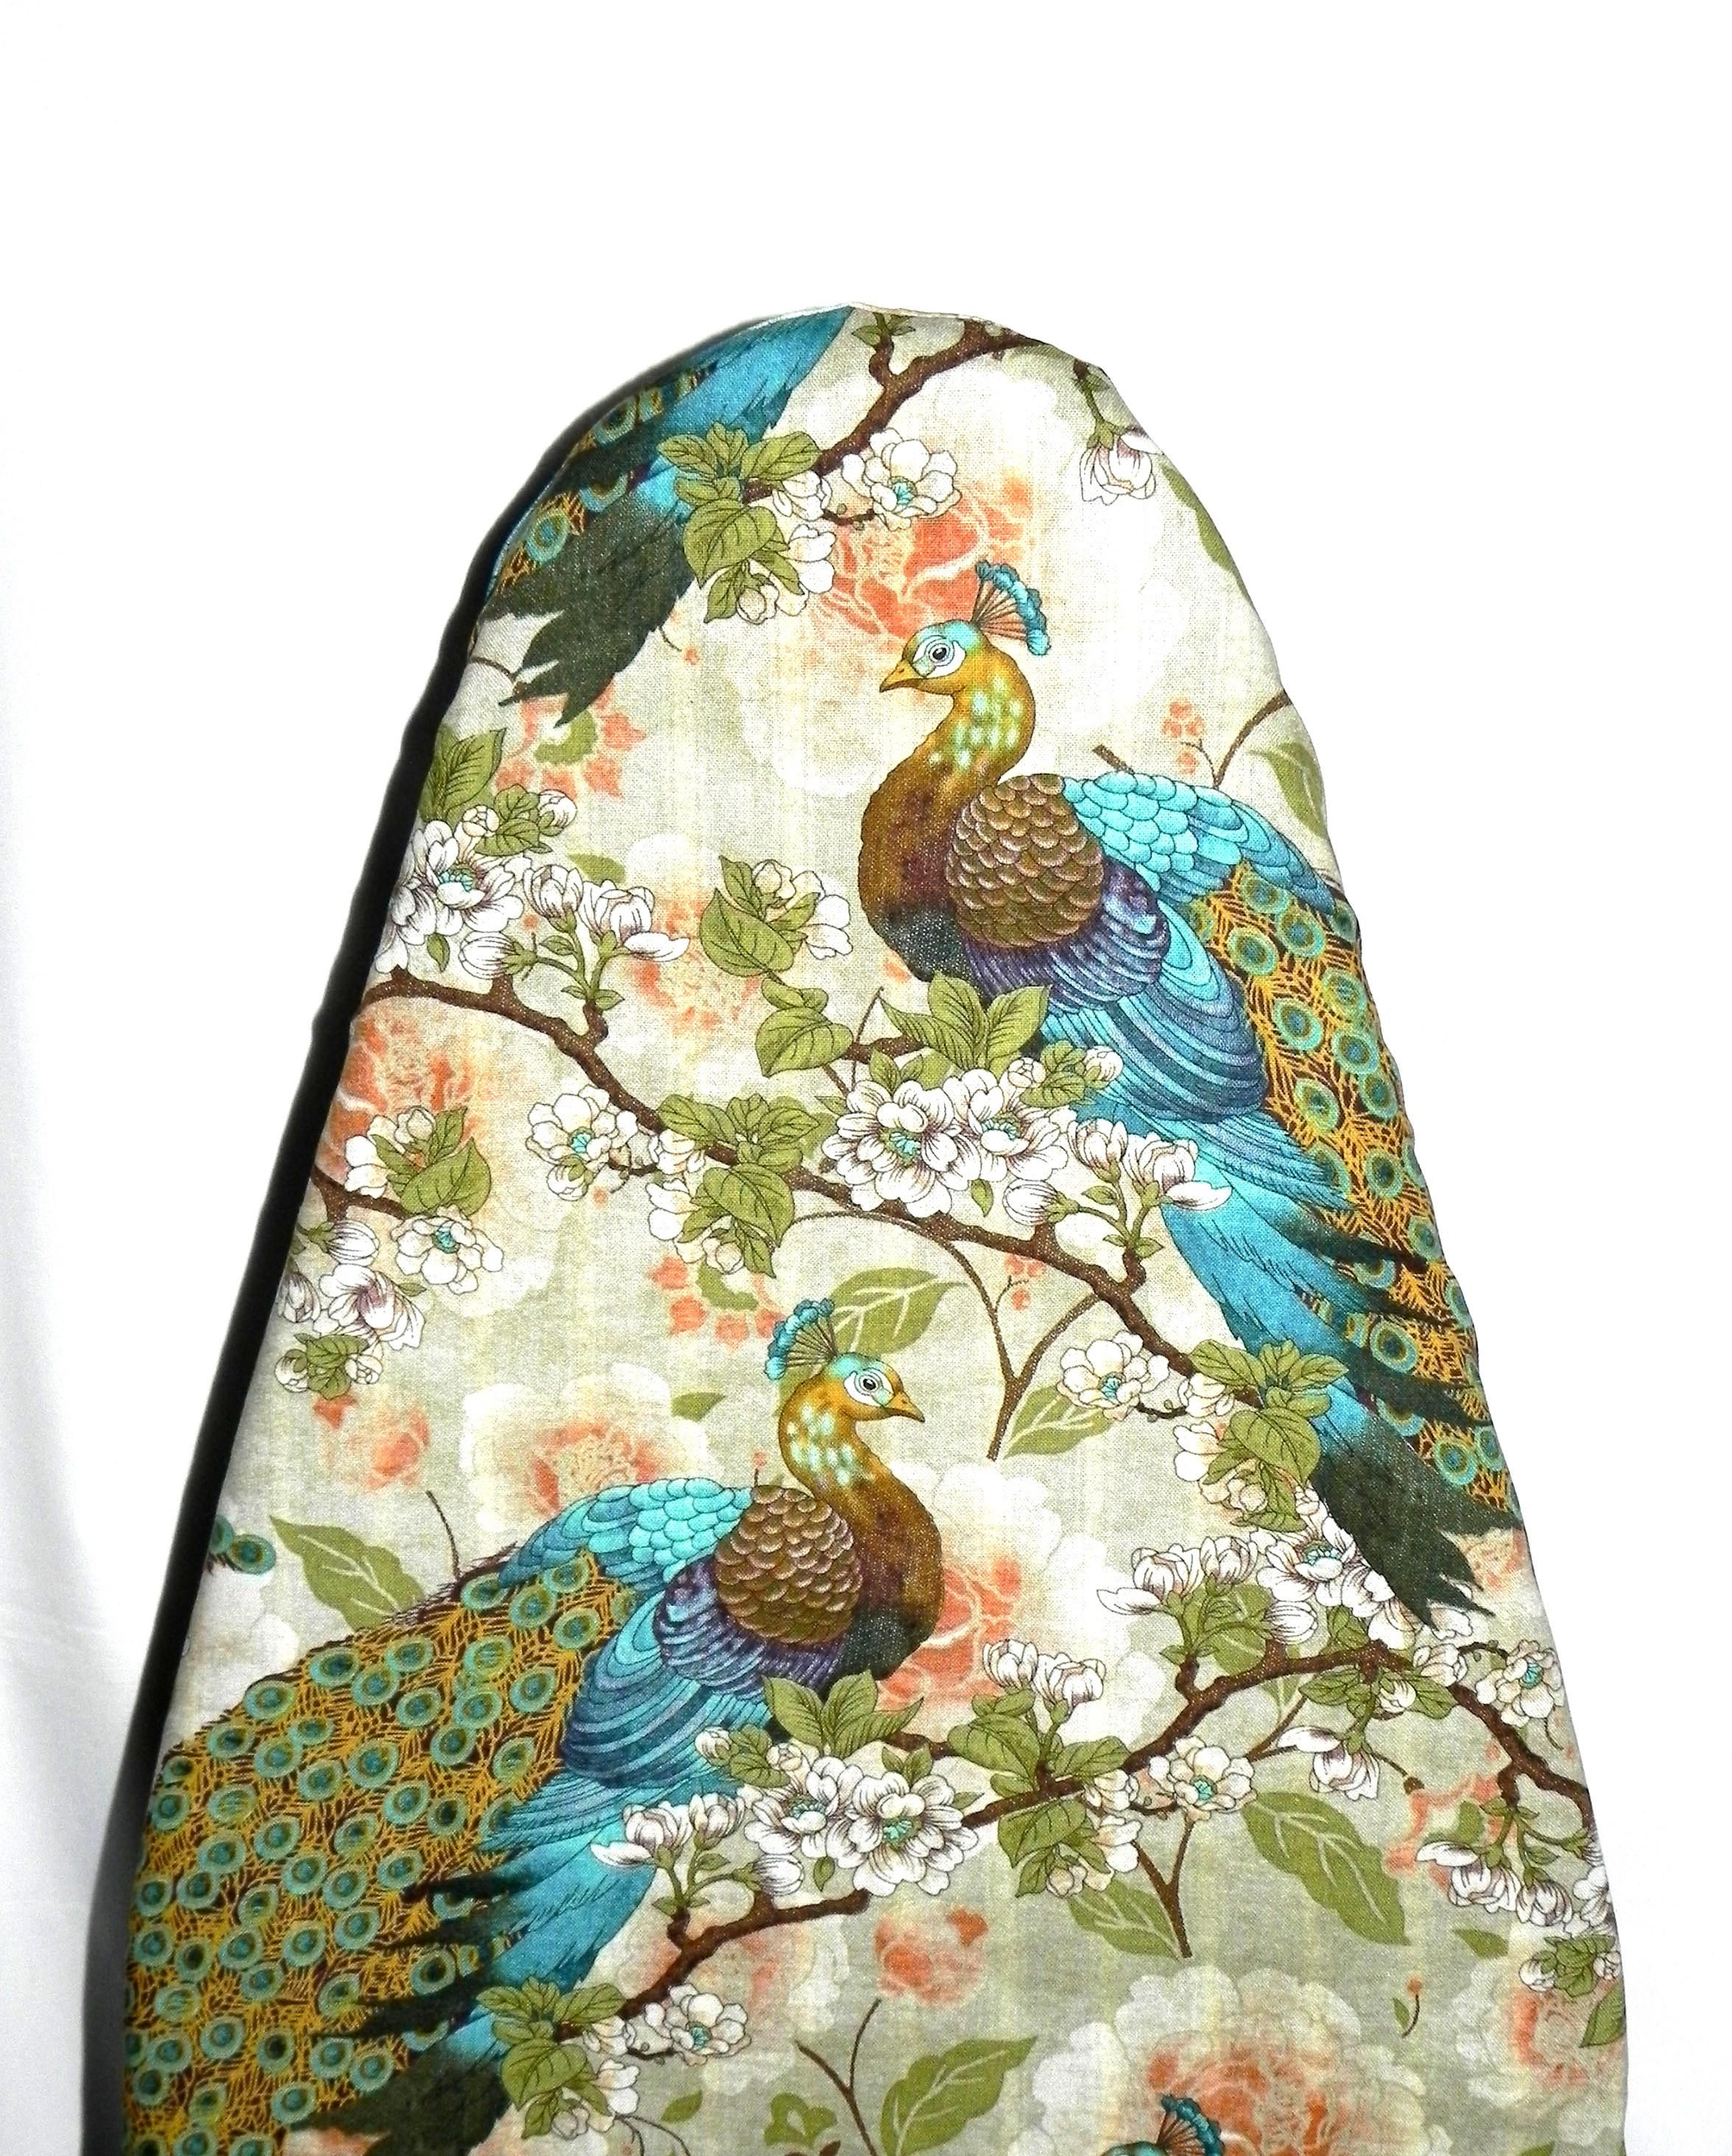 Tabletop Ironing Board Cover   Peacocks In Teal Blue, Brown, Cream, Coral  And